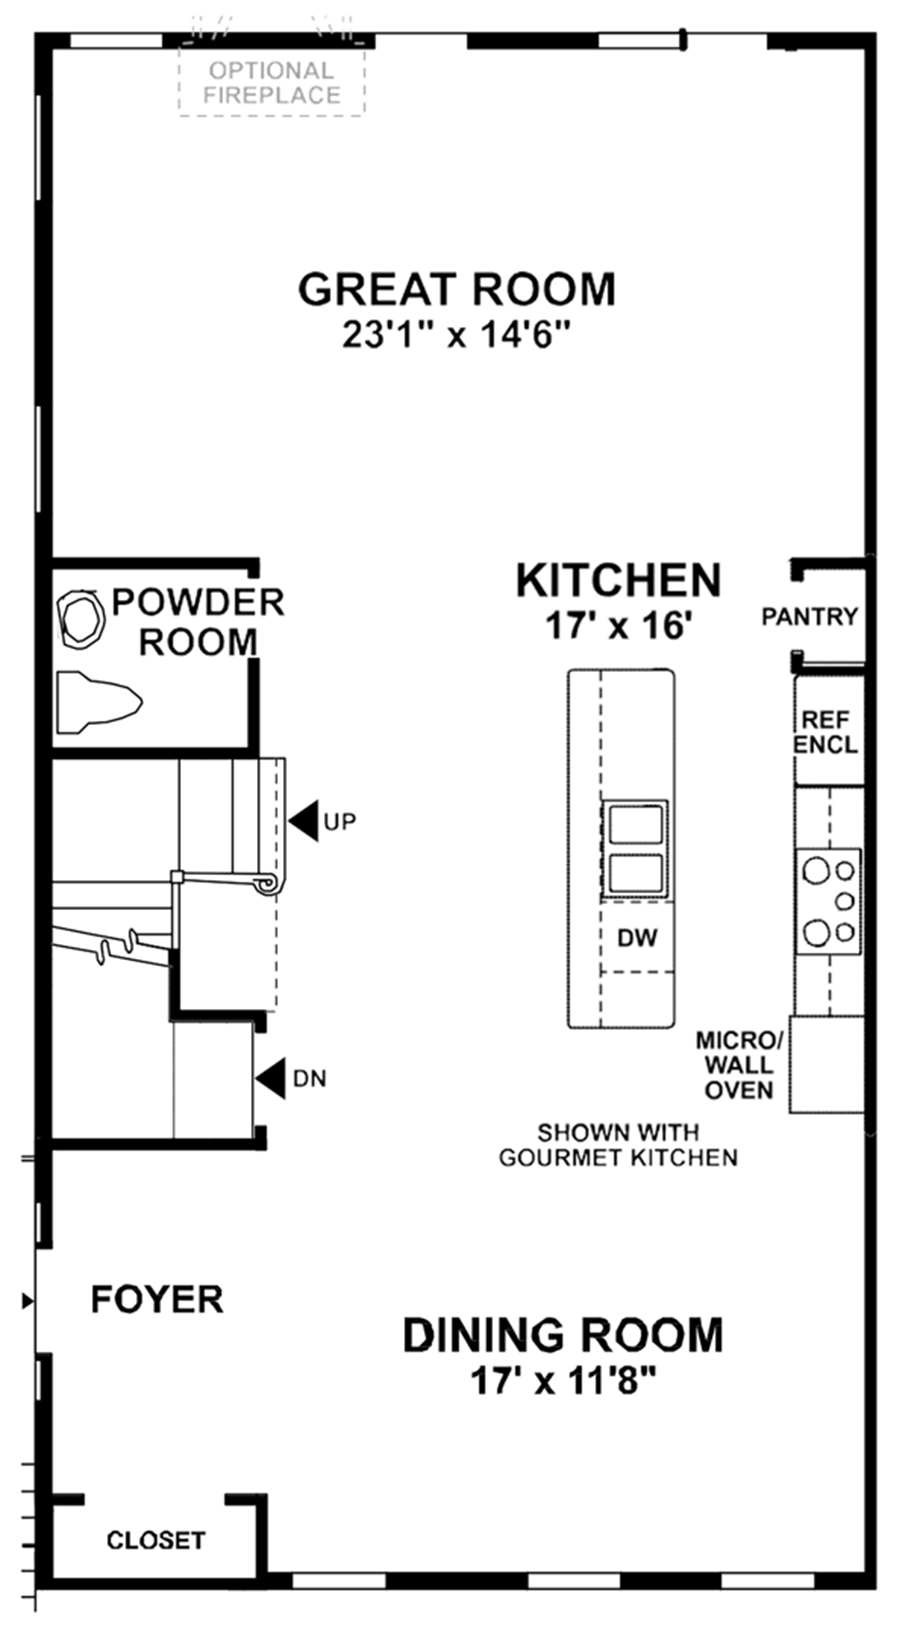 Optional Main Level Open Great Room Floor Plan